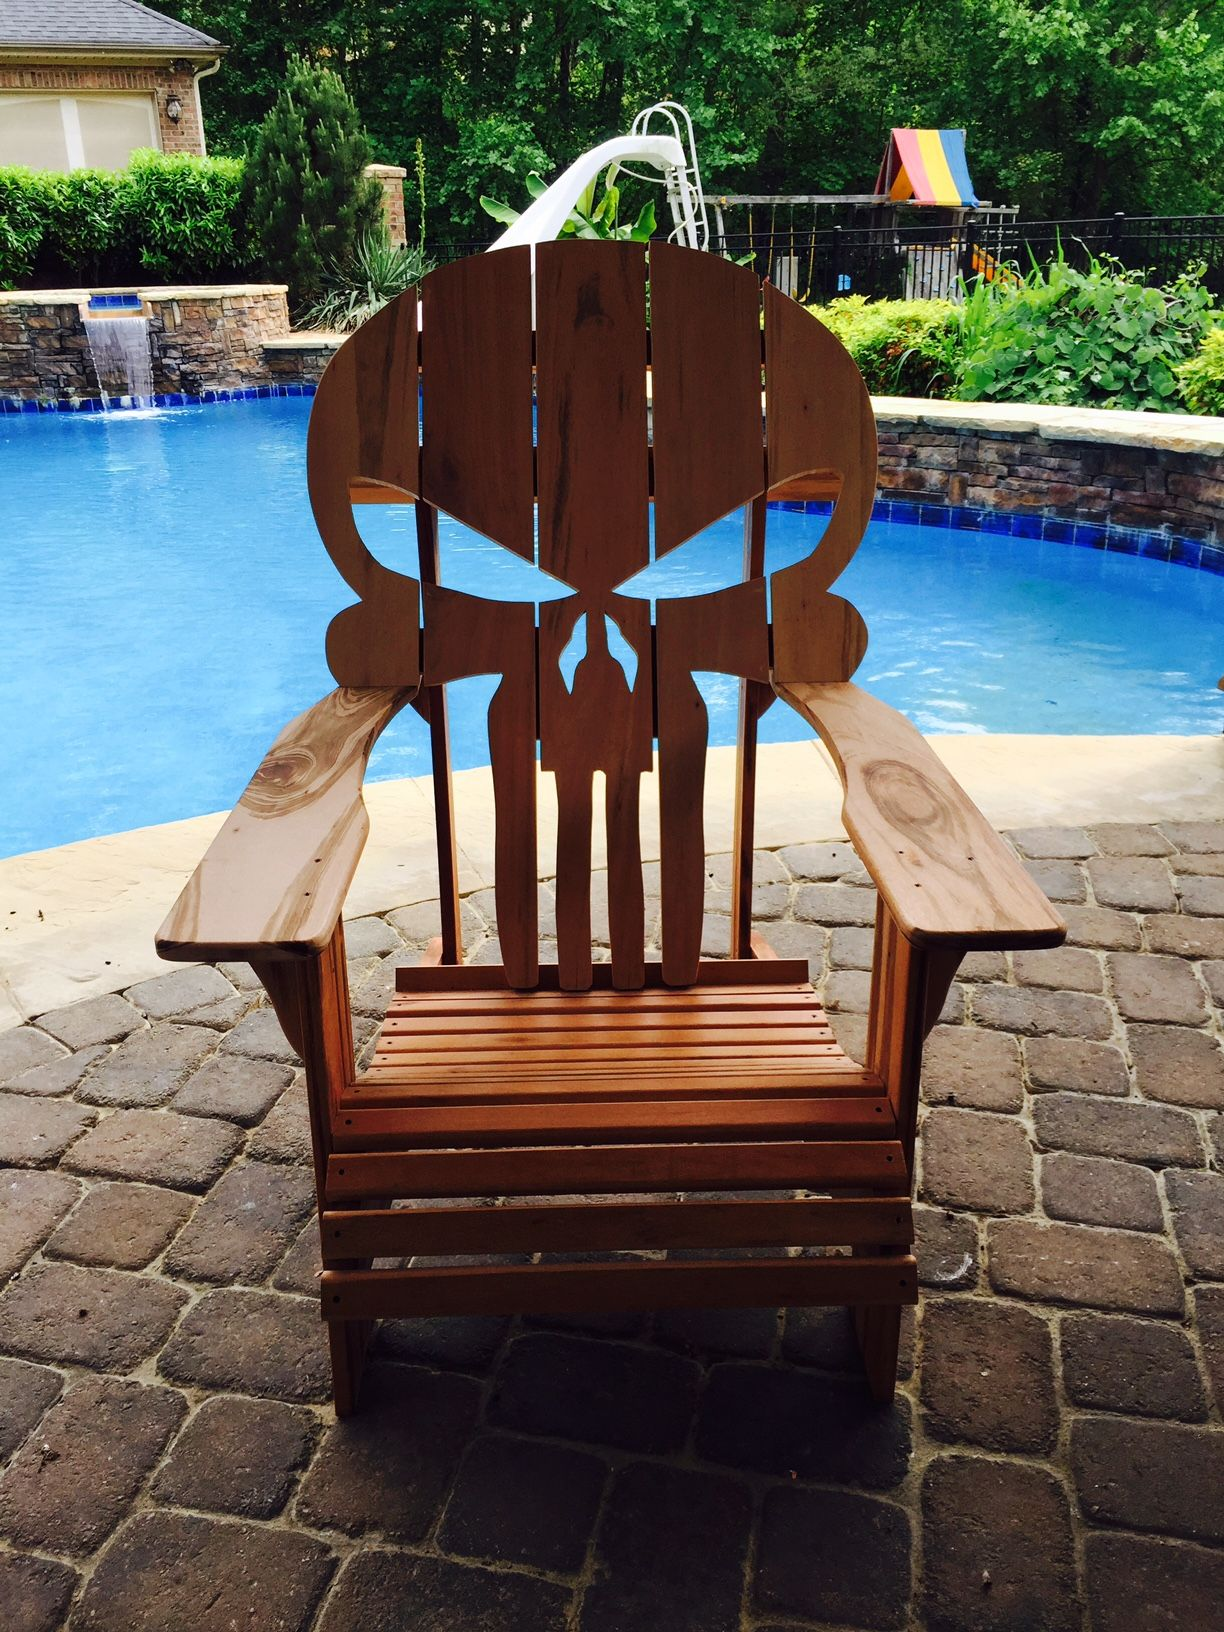 wooden skull chair plastic chairs target buy a custom adirondack made to order from carolina wood designs custommade com